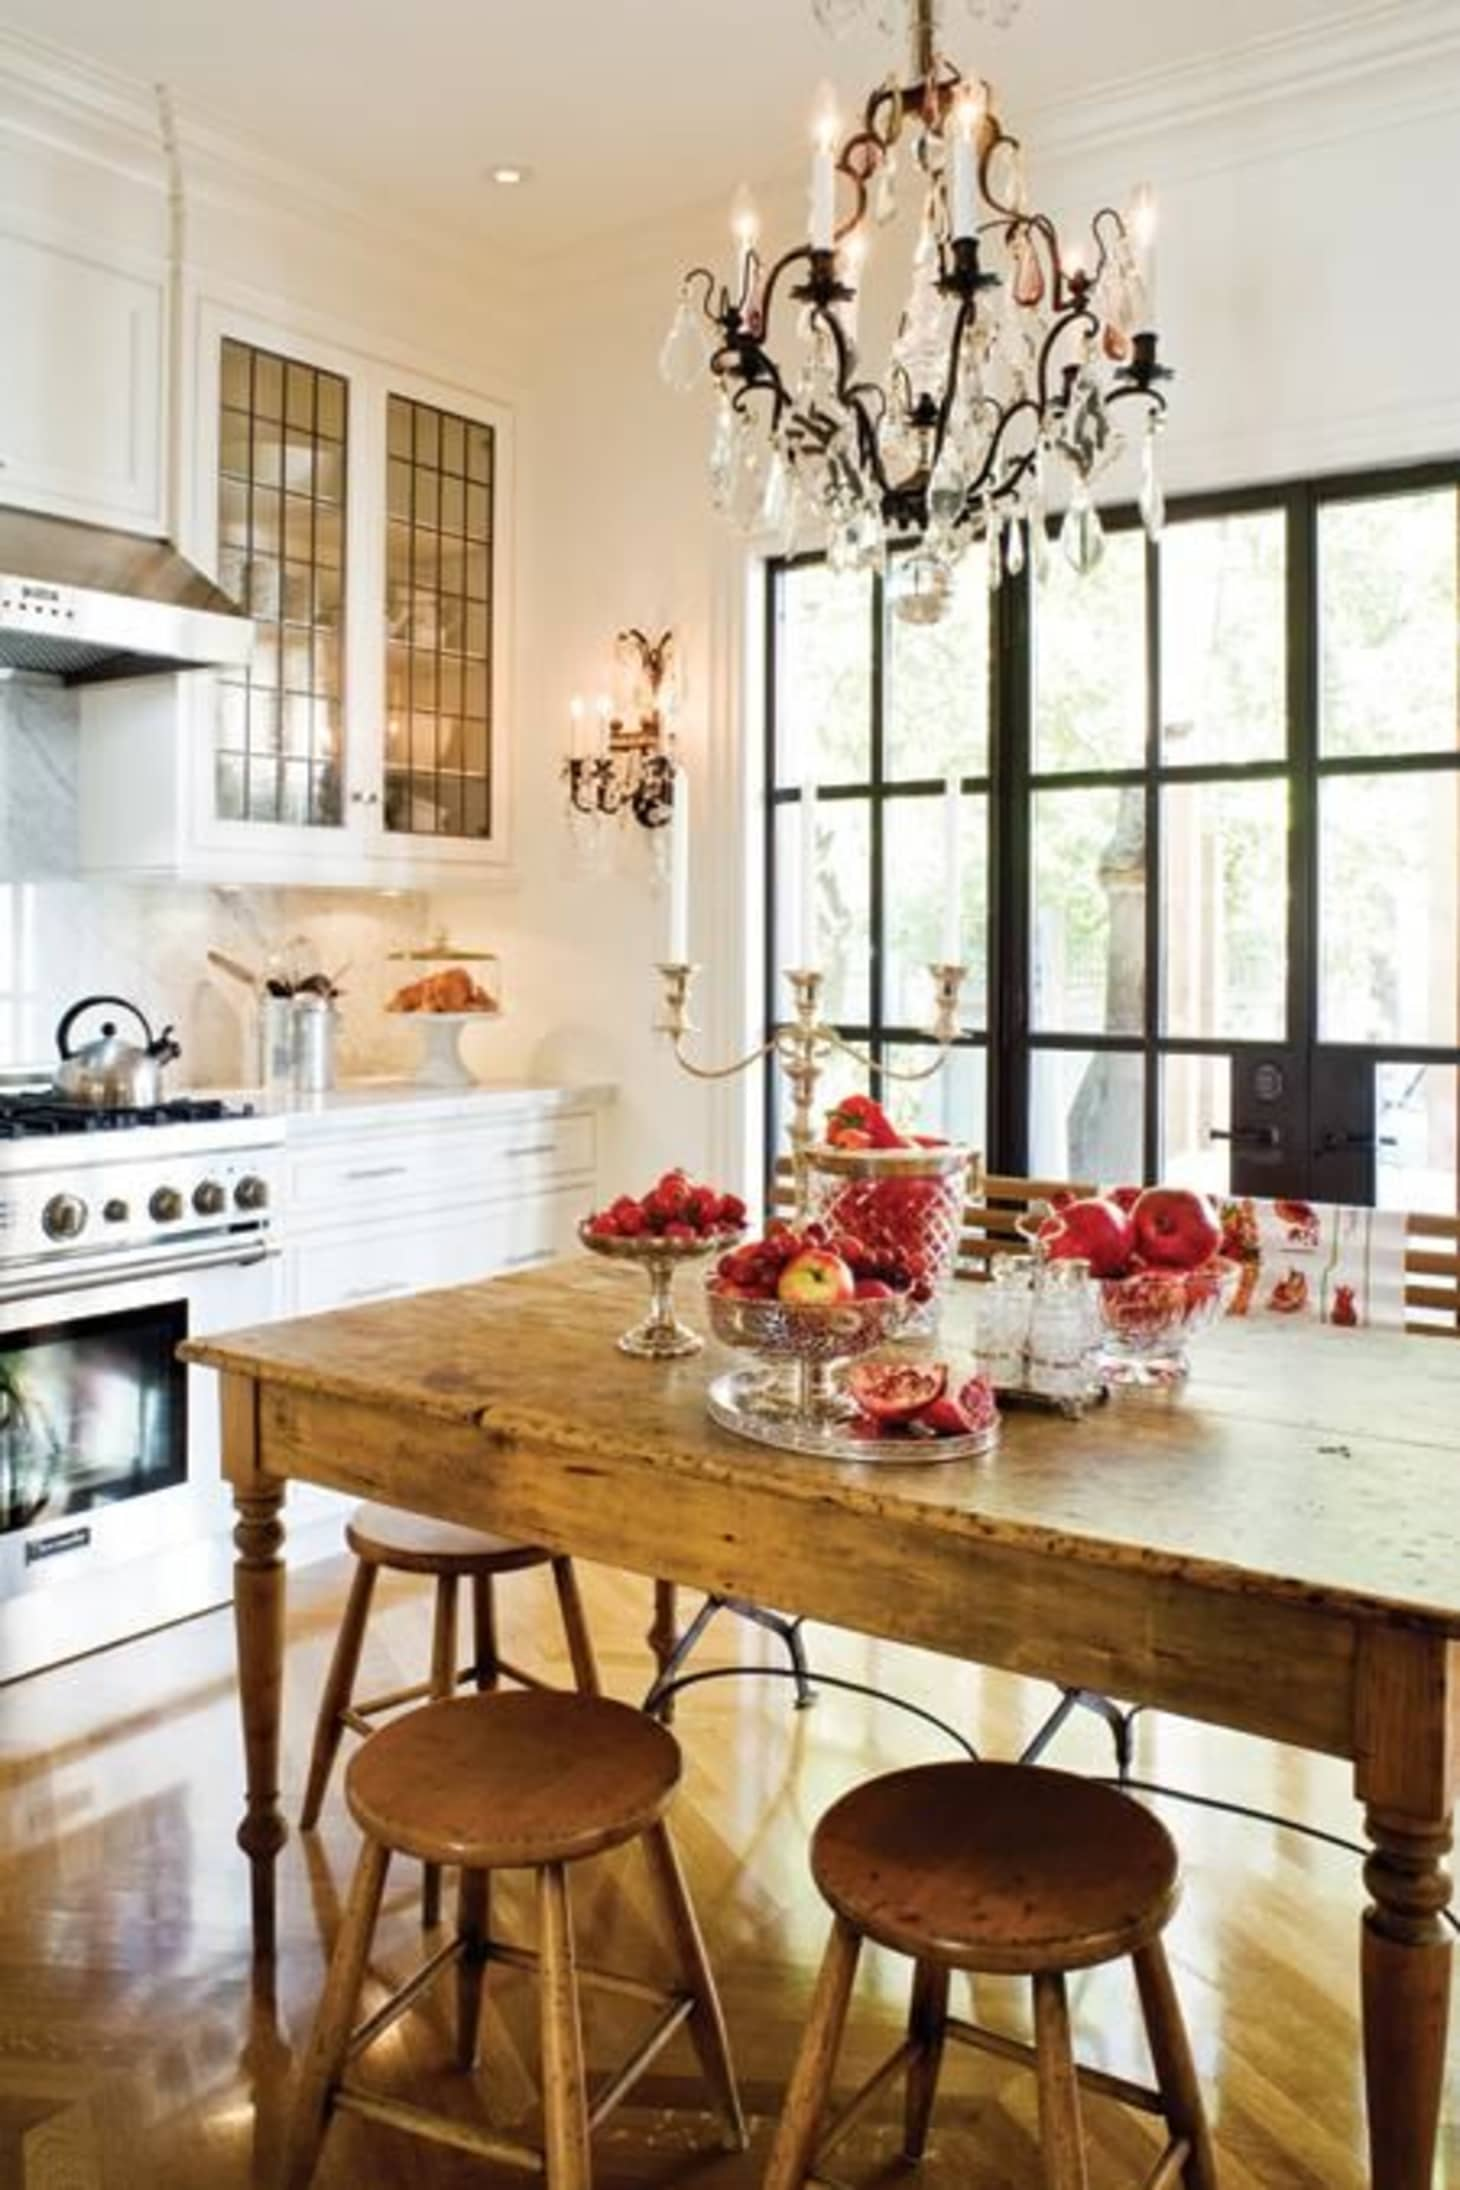 Old Wood Tables in the Middle of the Kitchen | Kitchn